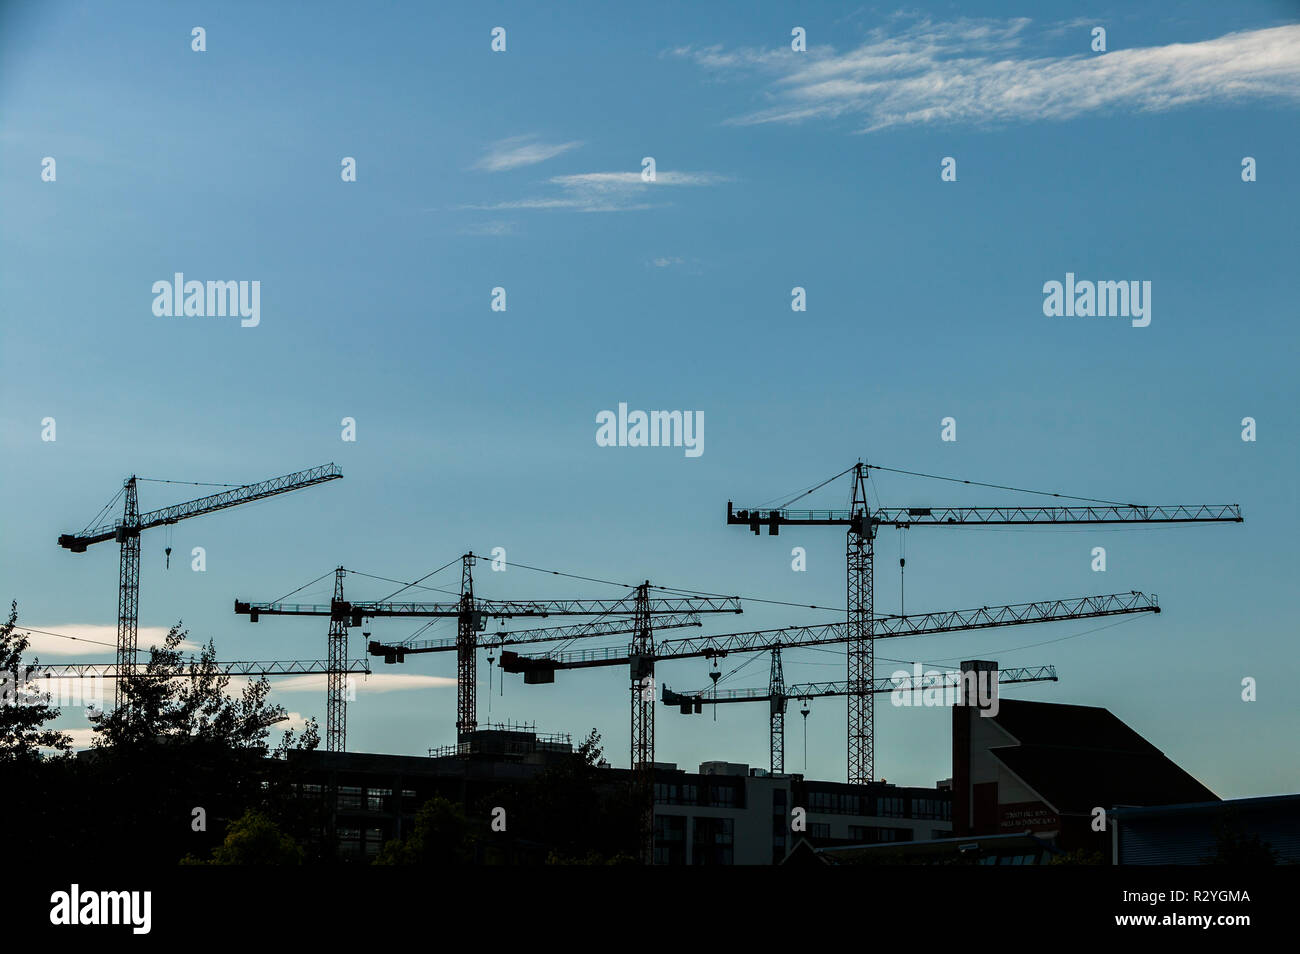 Silhouette of construction cranes against blue sky Stock Photo